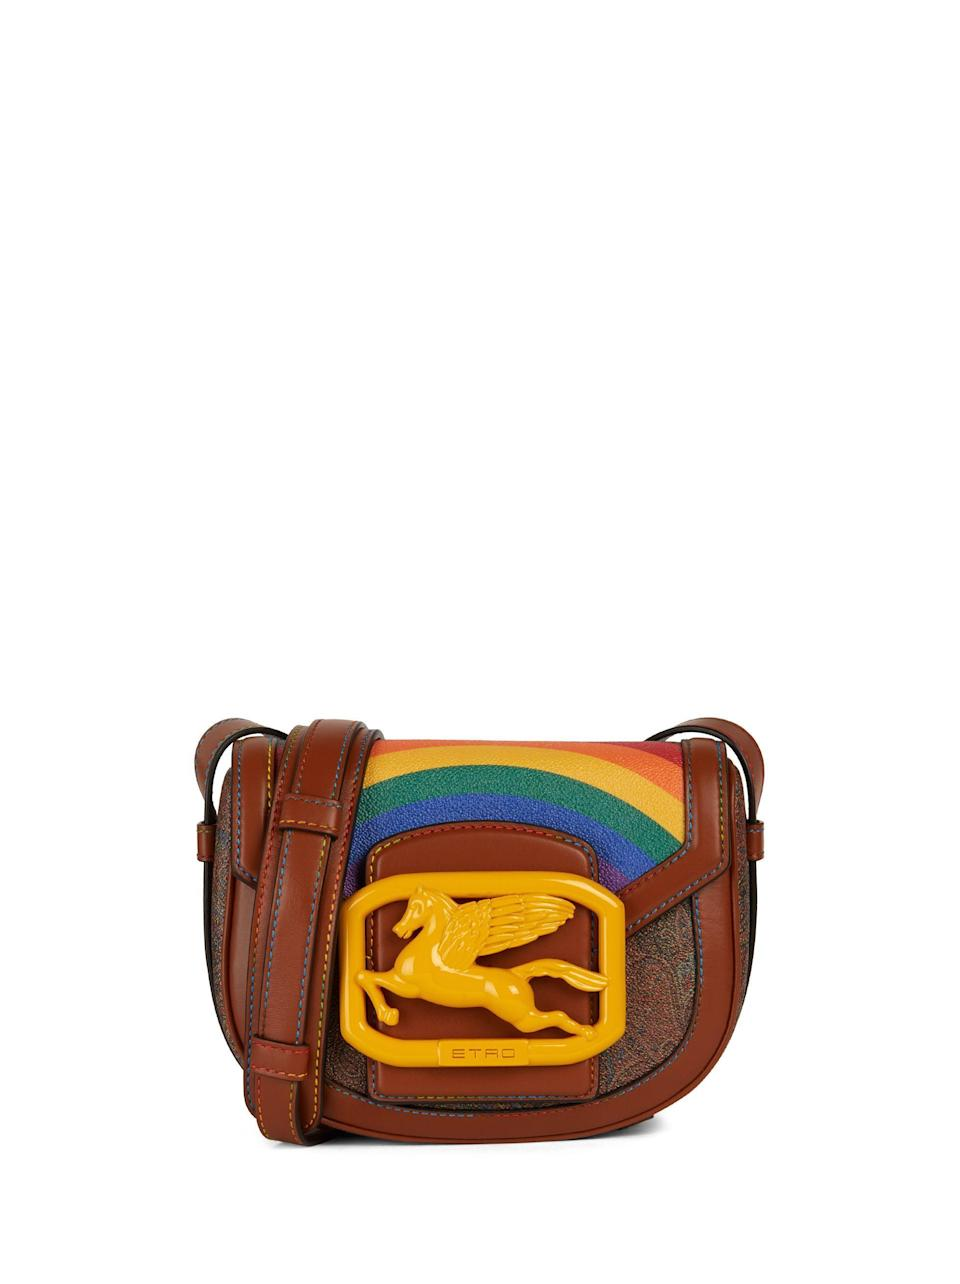 """<p><strong>Etro</strong></p><p>etro.com</p><p><strong>$1.00</strong></p><p><a href=""""https://www.etro.com/us-en/pegaso-pride-bag-202P1N3452417060001.html"""" rel=""""nofollow noopener"""" target=""""_blank"""" data-ylk=""""slk:Shop Now"""" class=""""link rapid-noclick-resp"""">Shop Now</a></p><p>The Italian fashion brand will donate a percentage of proceeds from each Pride bag sold to Casa Arcobaleno, an organization that provides shelter to LGBTQ+ individuals in Milan. </p>"""